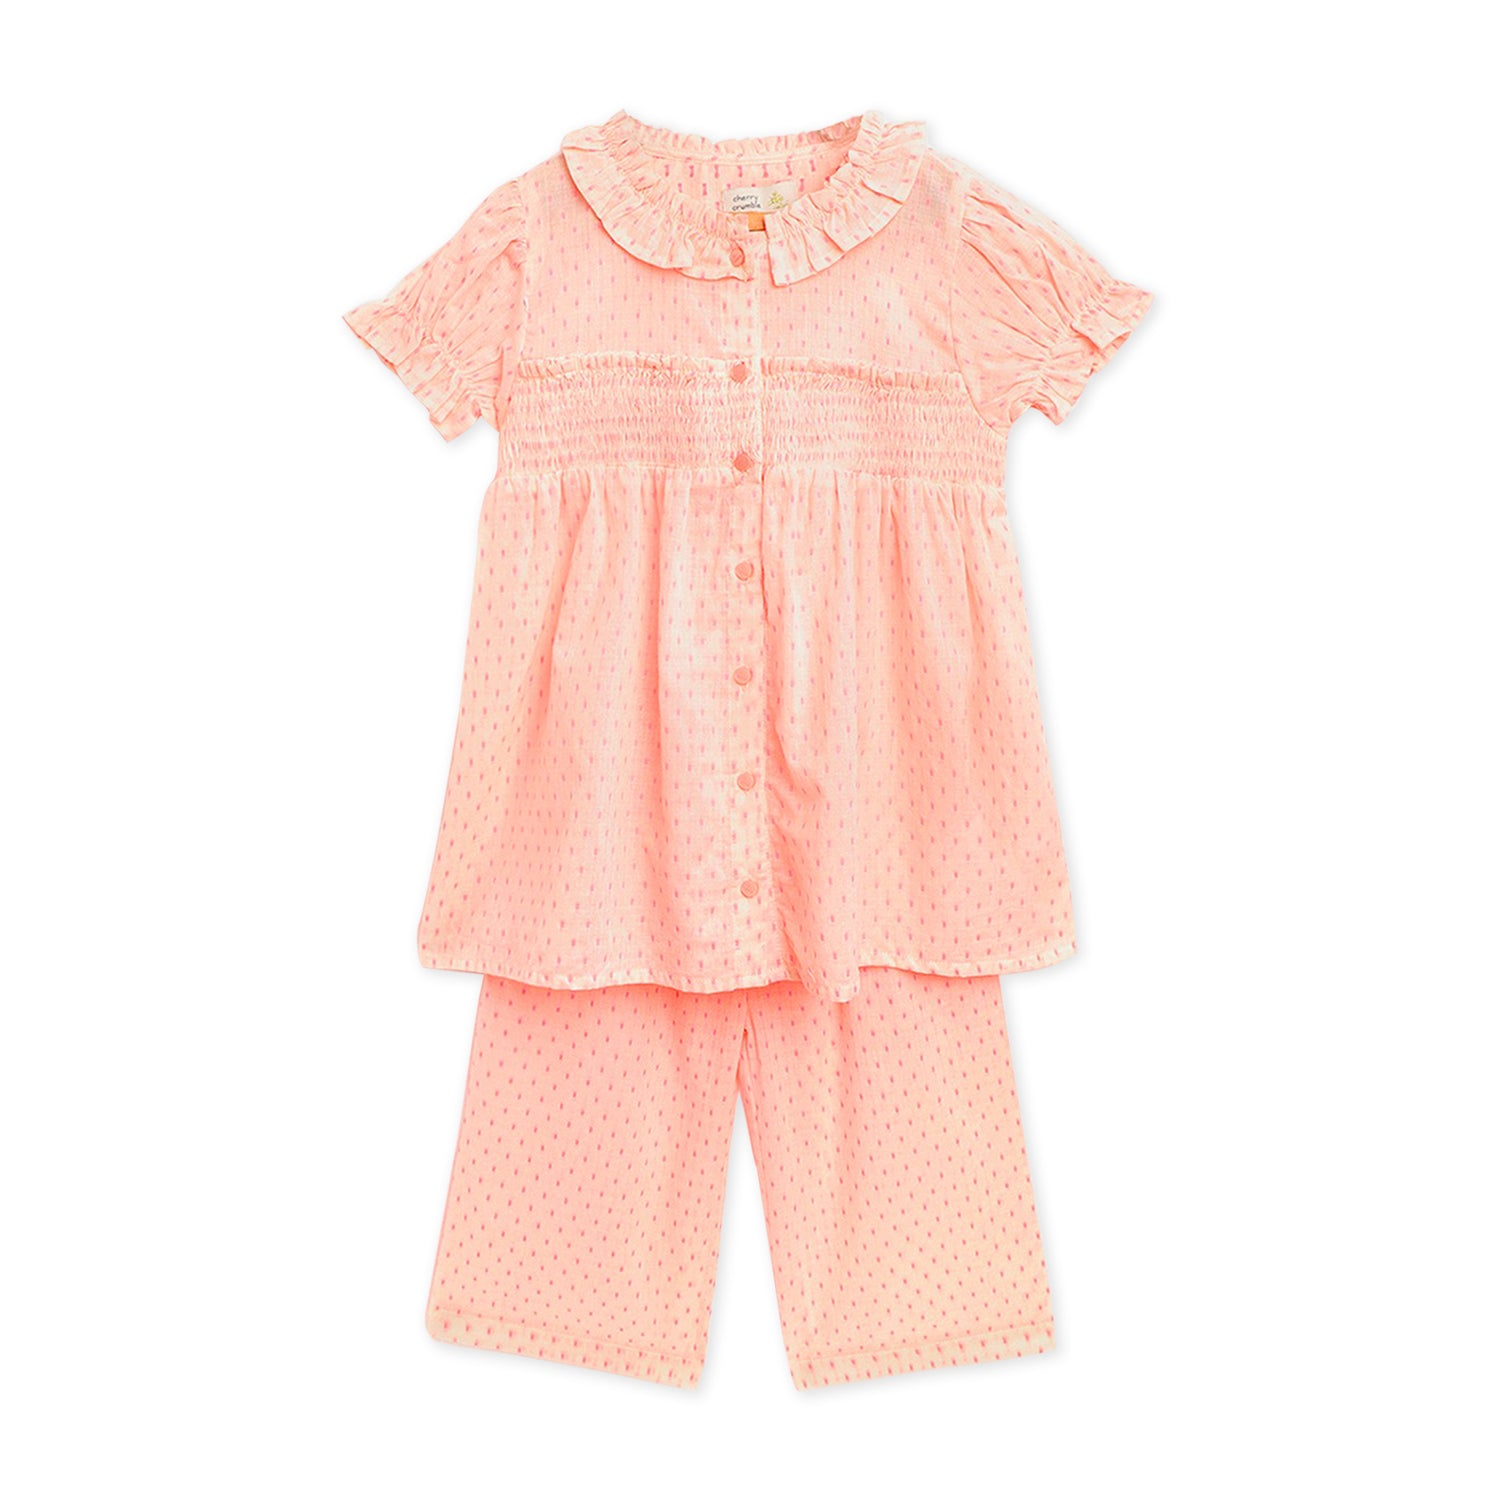 kids-berry nightsuit-ws-gnsuit-6099org